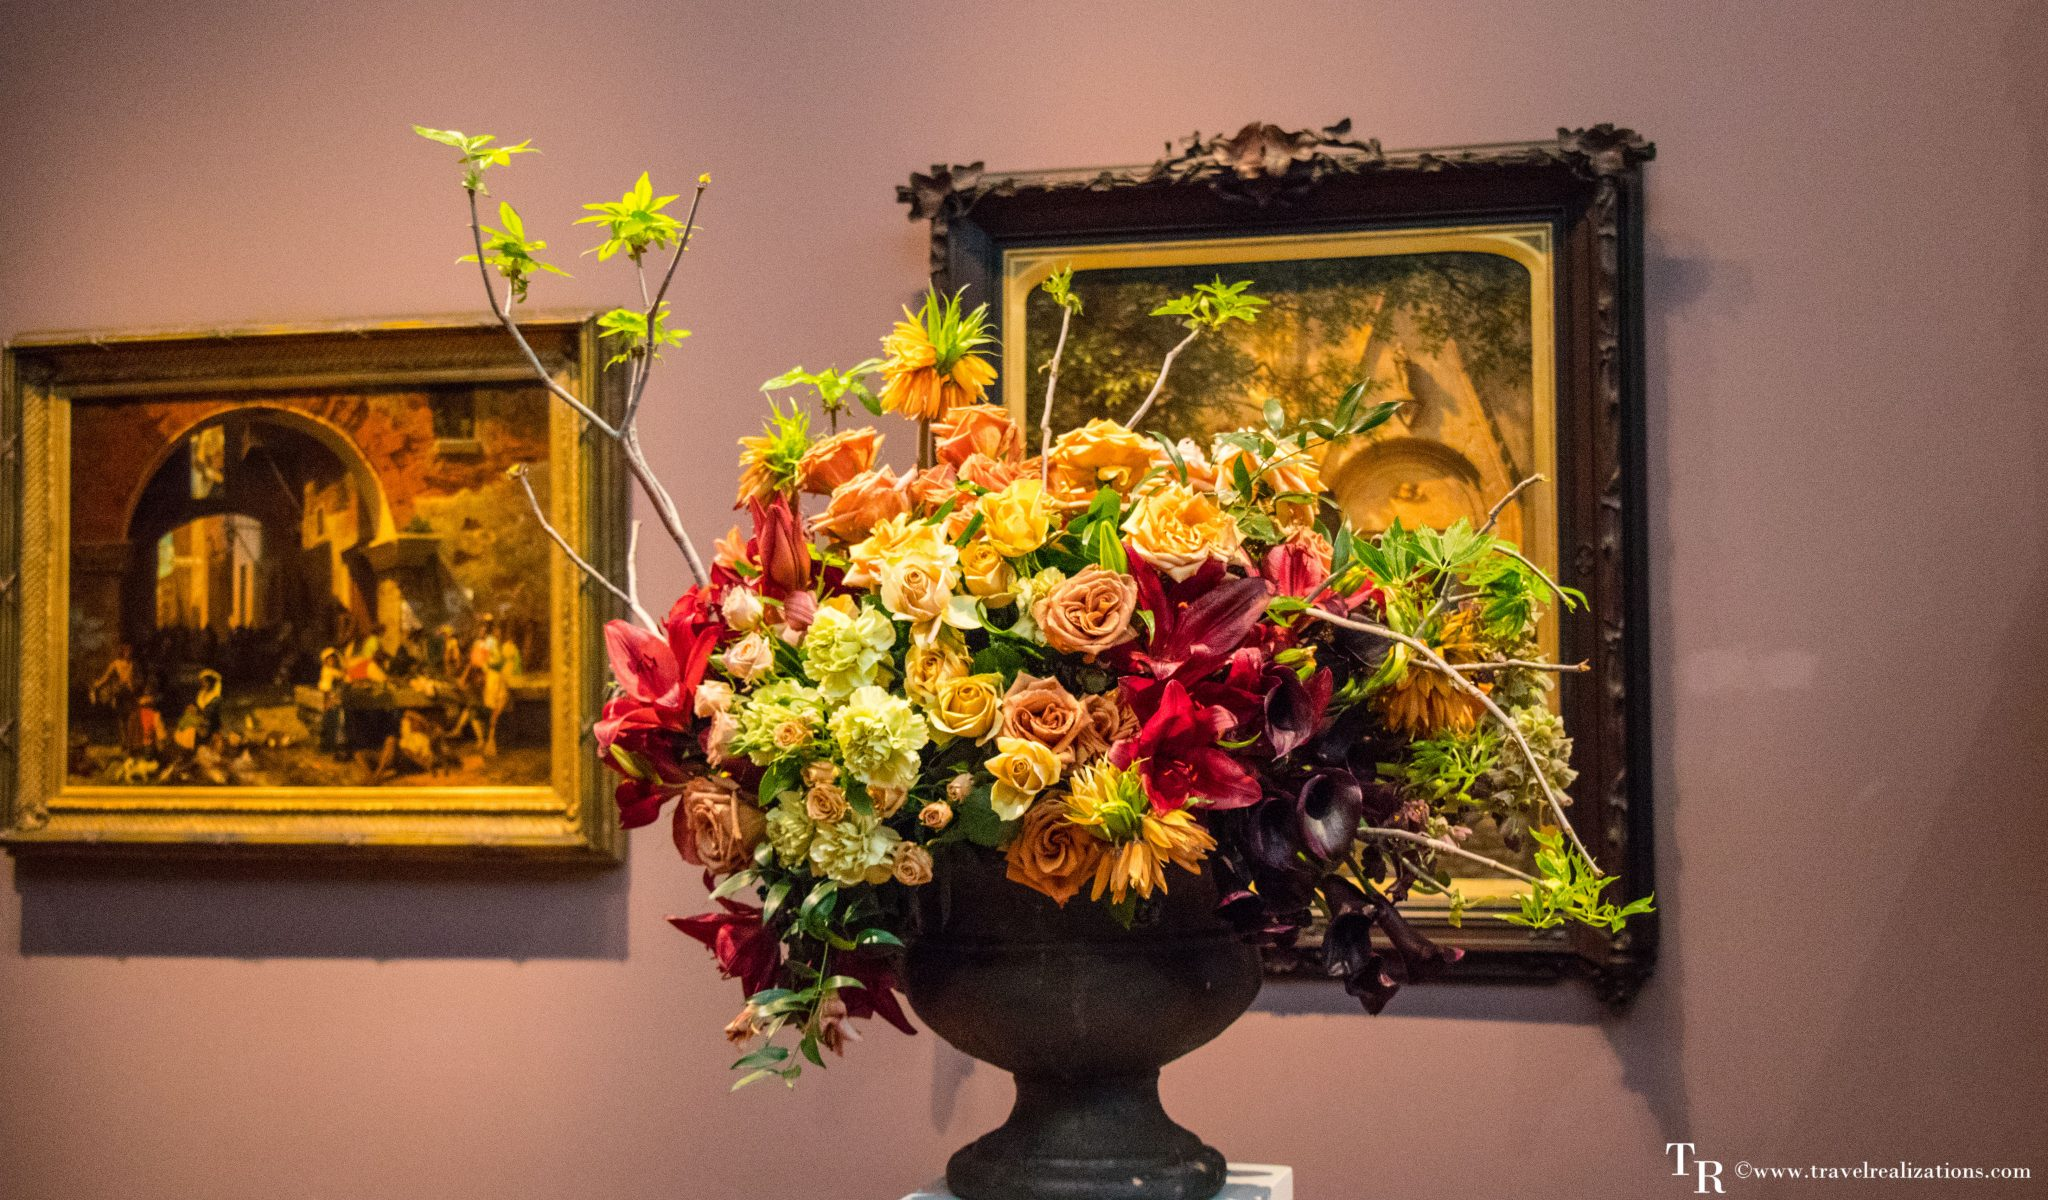 Bouquets To Art - When art blooms in San Francisco!